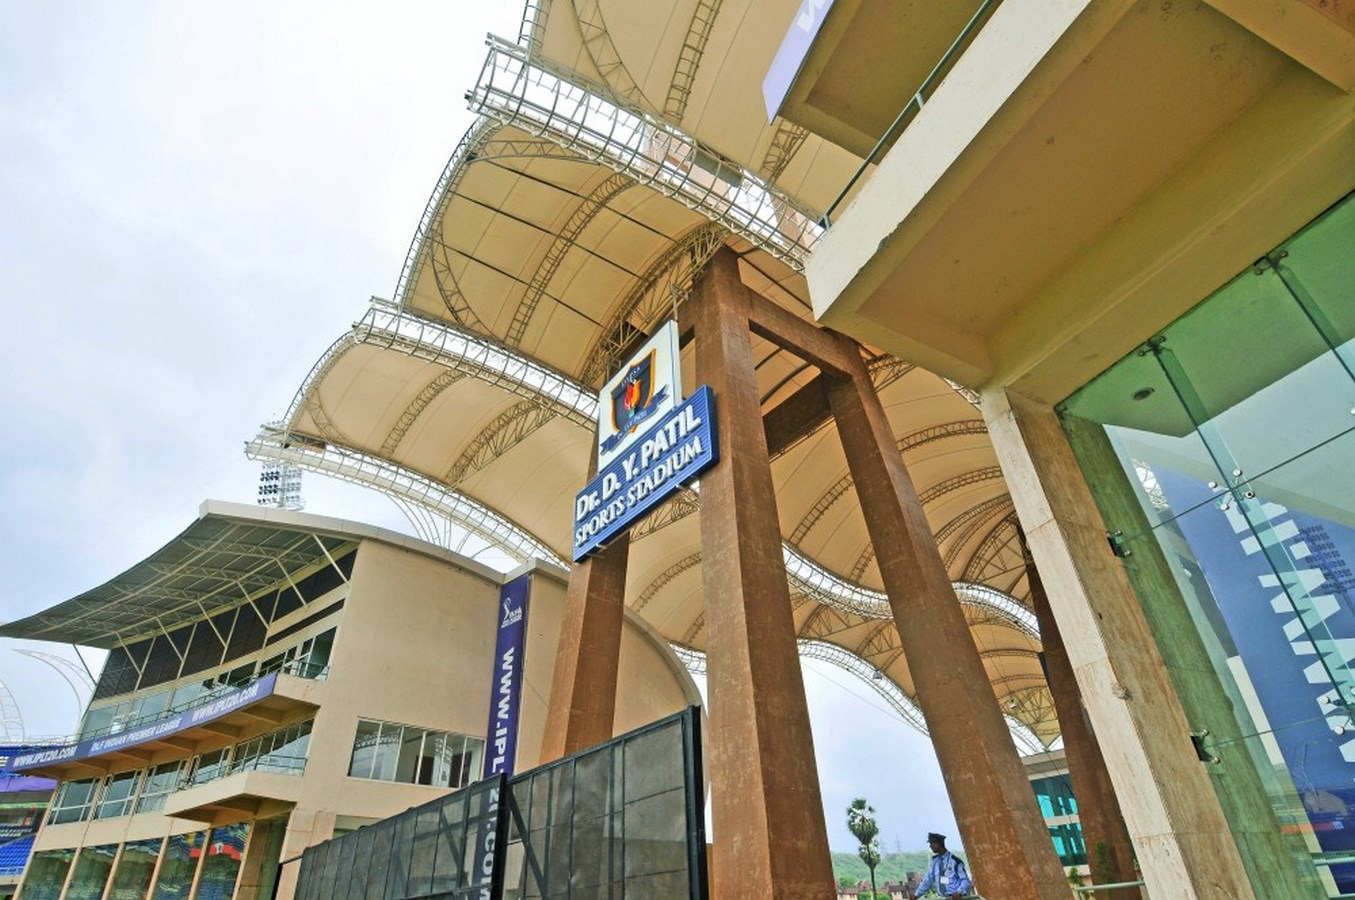 20 Iconic Projects By Hafeez Contractor - D Y Patil Sports Stadium